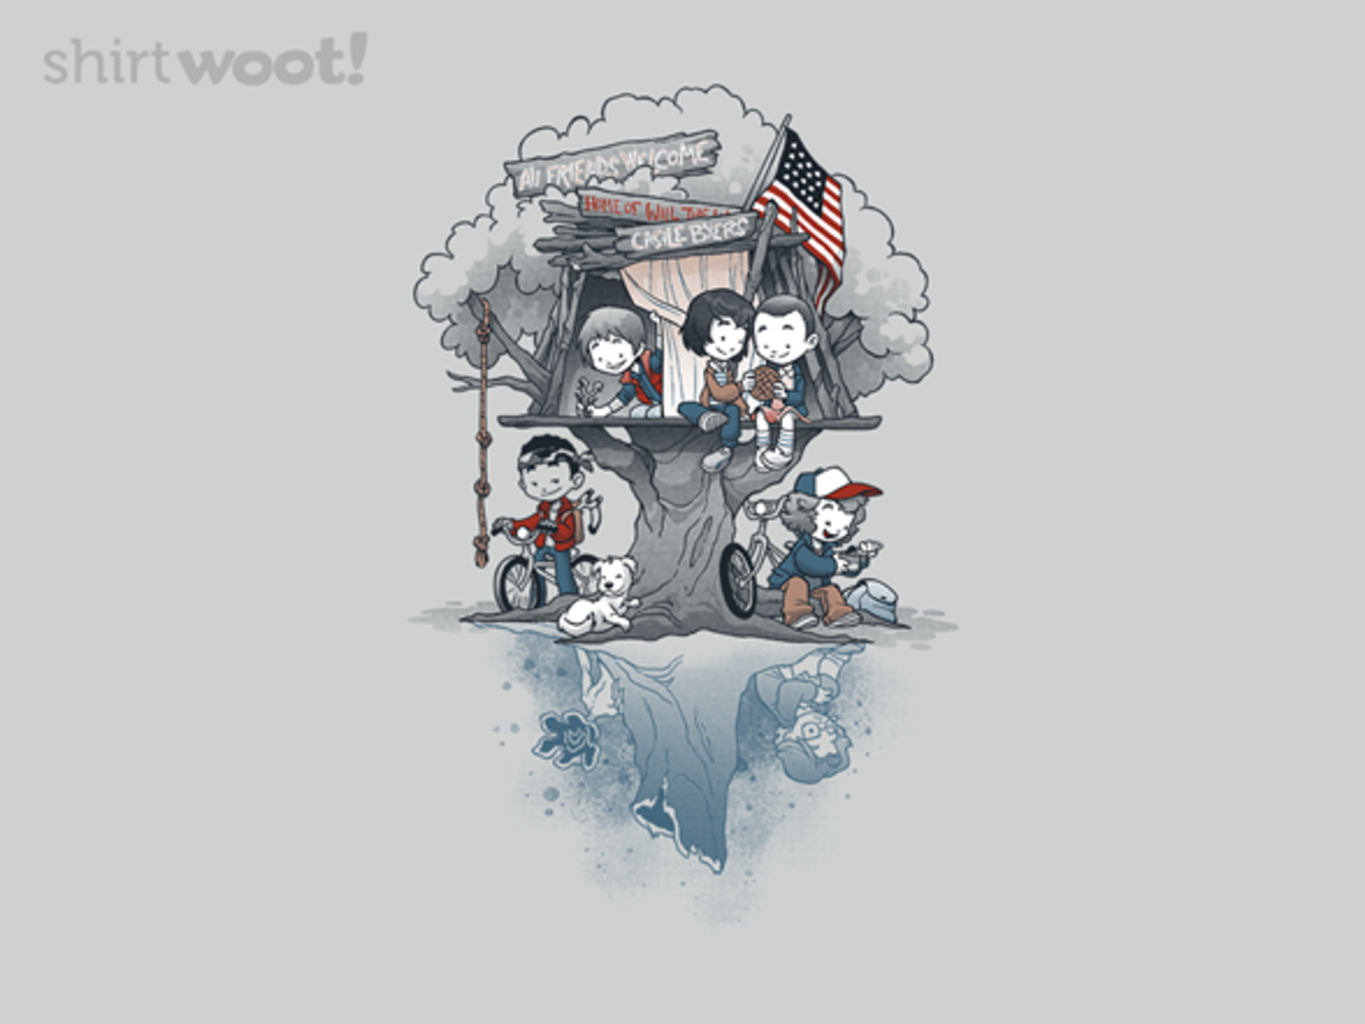 Woot!: Stranger Clubhouse